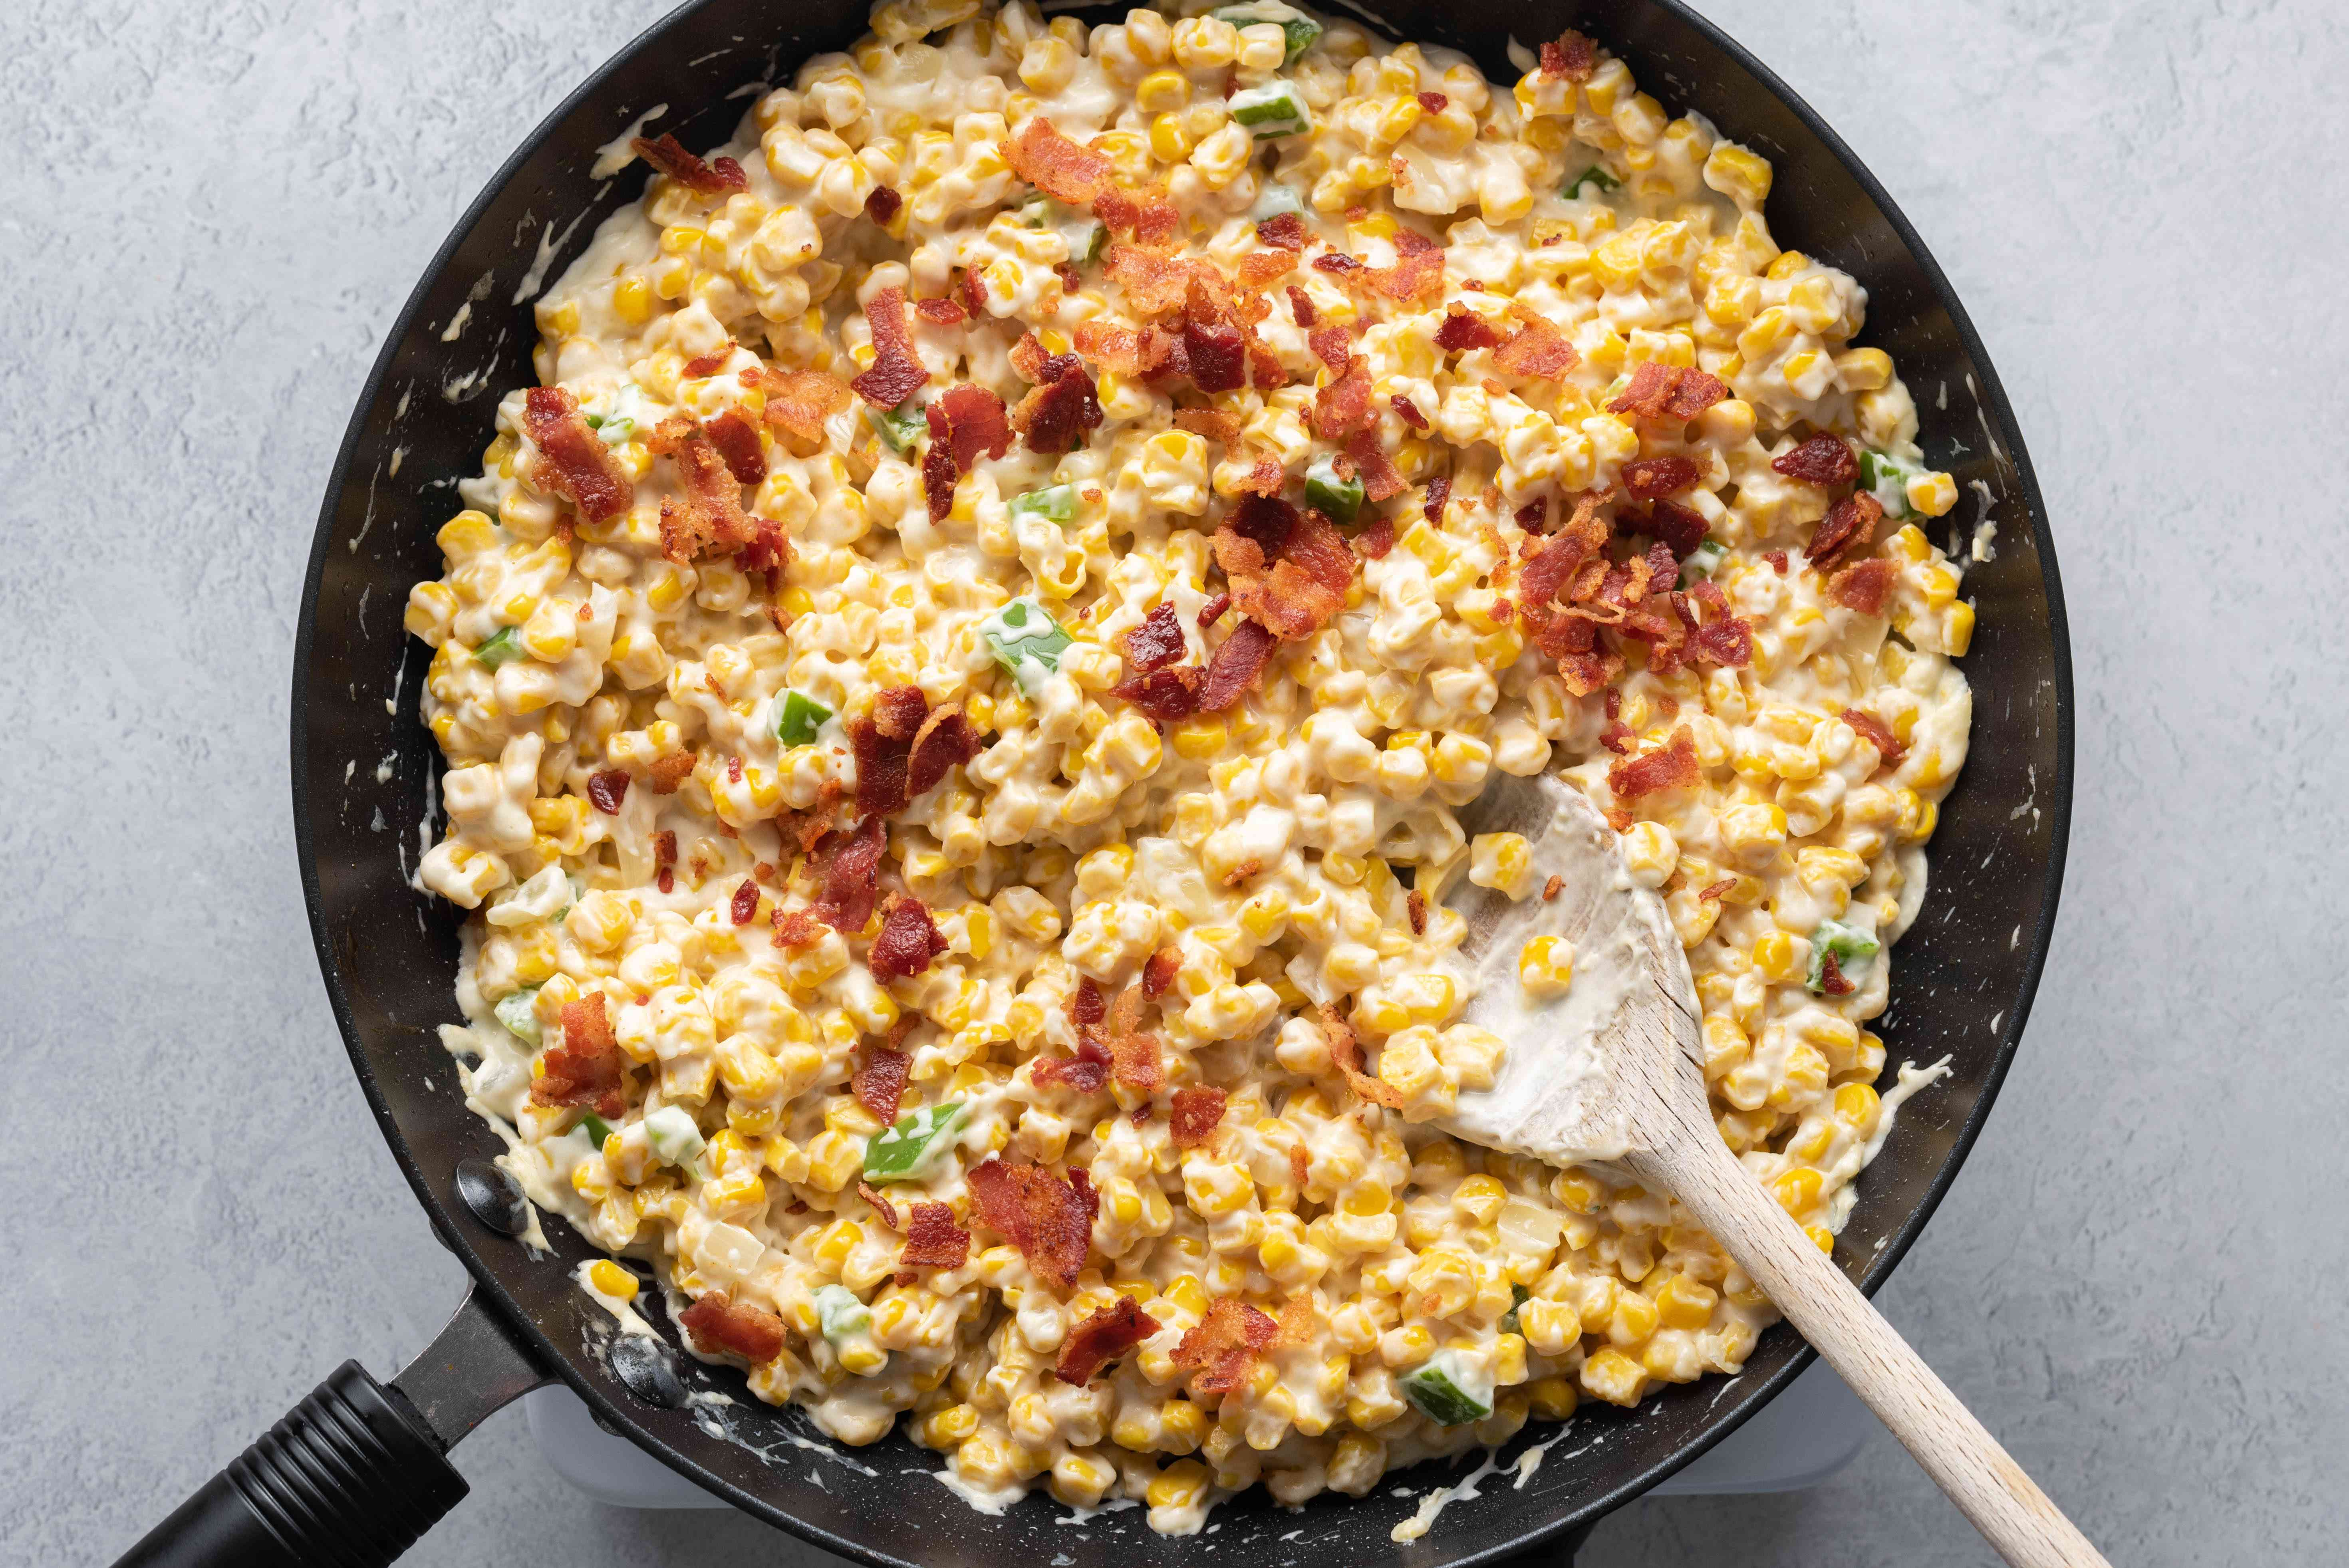 Corn With Bacon and Sour Cream cooking in a skillet